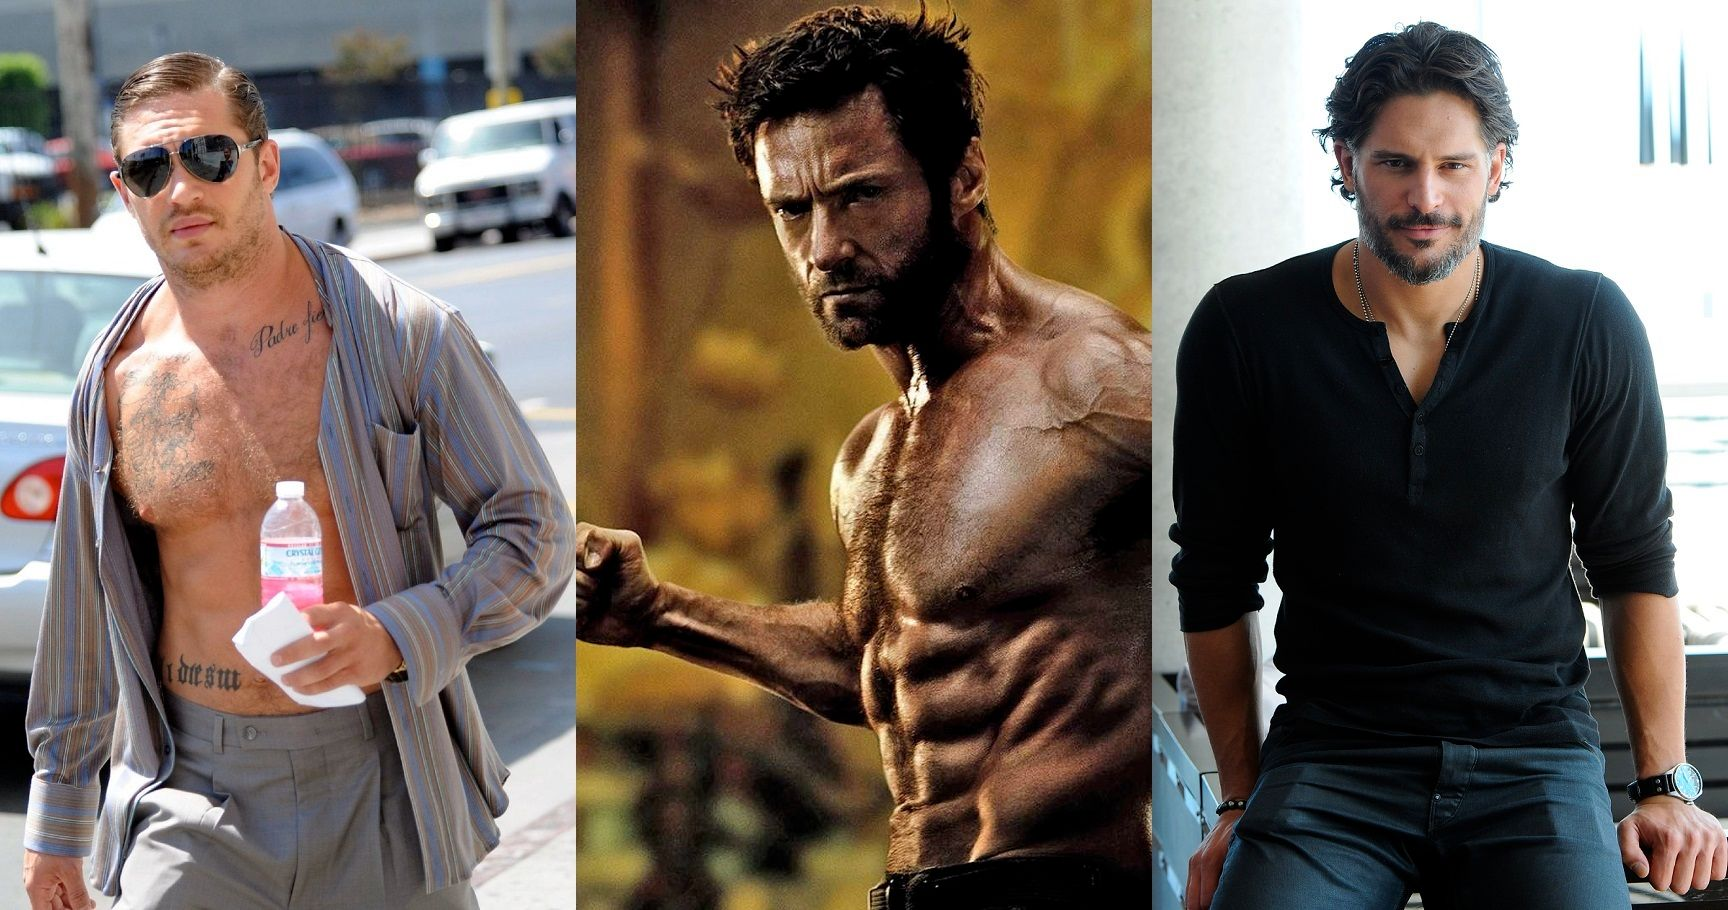 10 Actors Who Could Replace Hugh Jackman As Wolverine